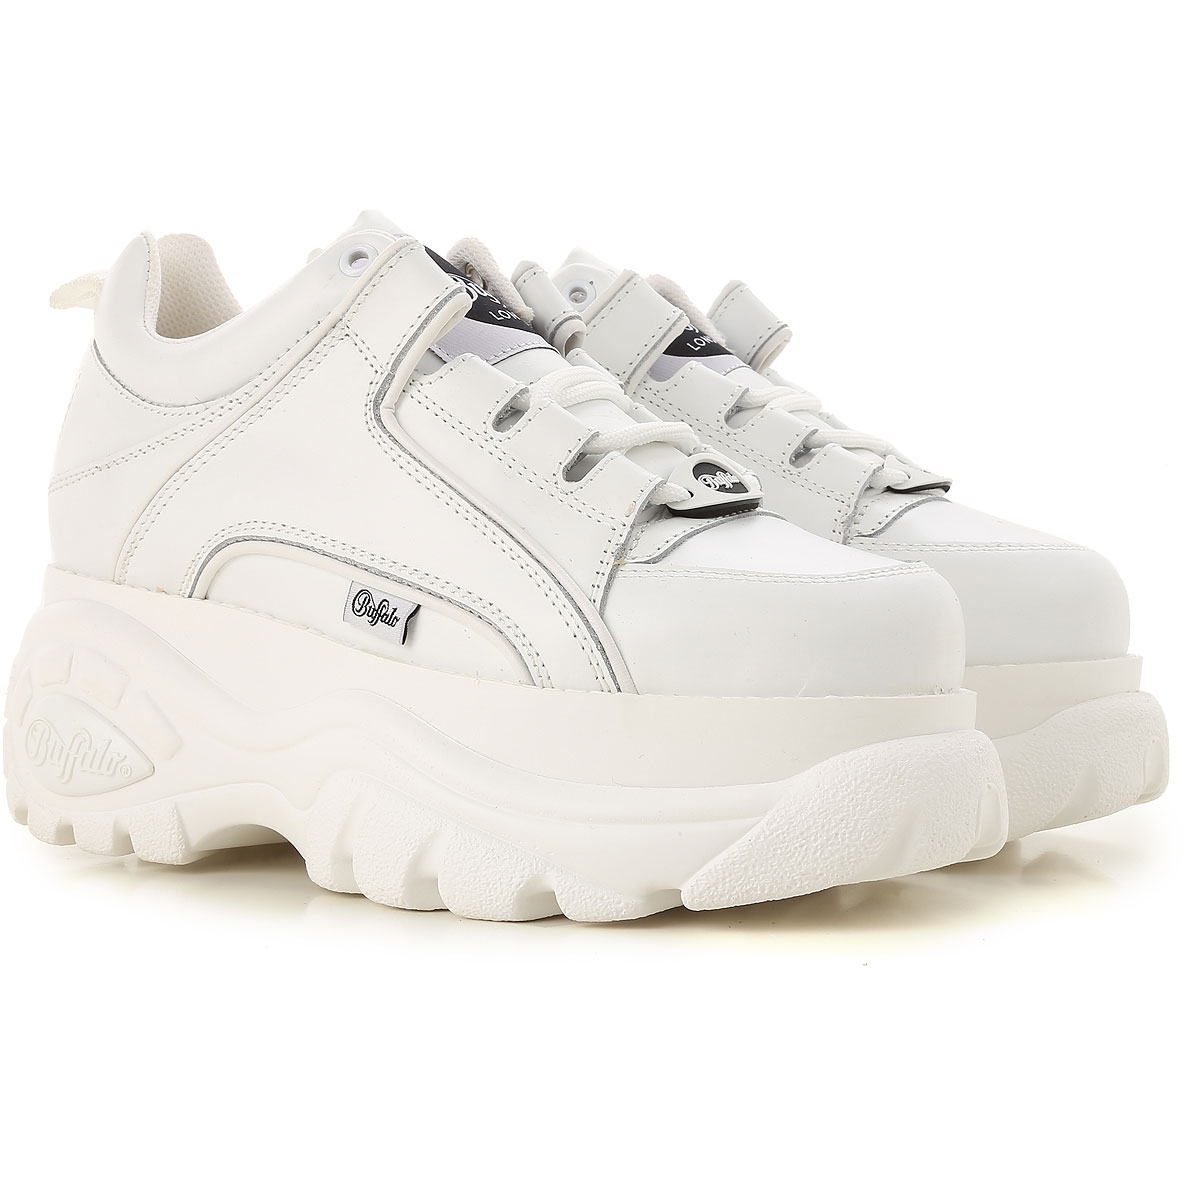 buy popular 6ee5d c52fa Womens Shoes Buffalo, Style code: 1339-142-01